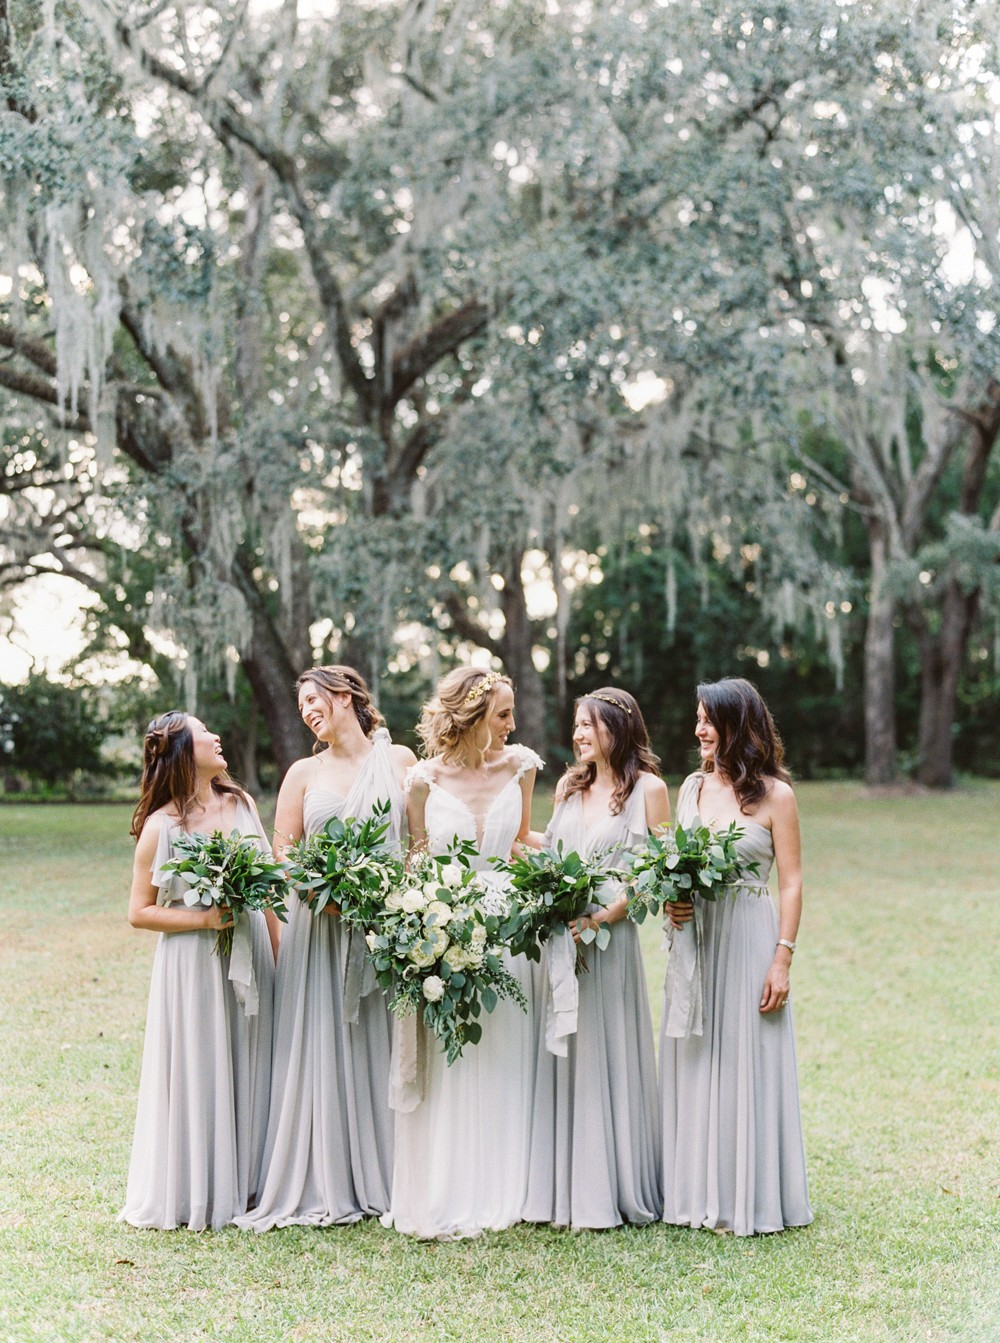 Gray & Olive Tone Charleston wedding with Alexandra Grecco dress